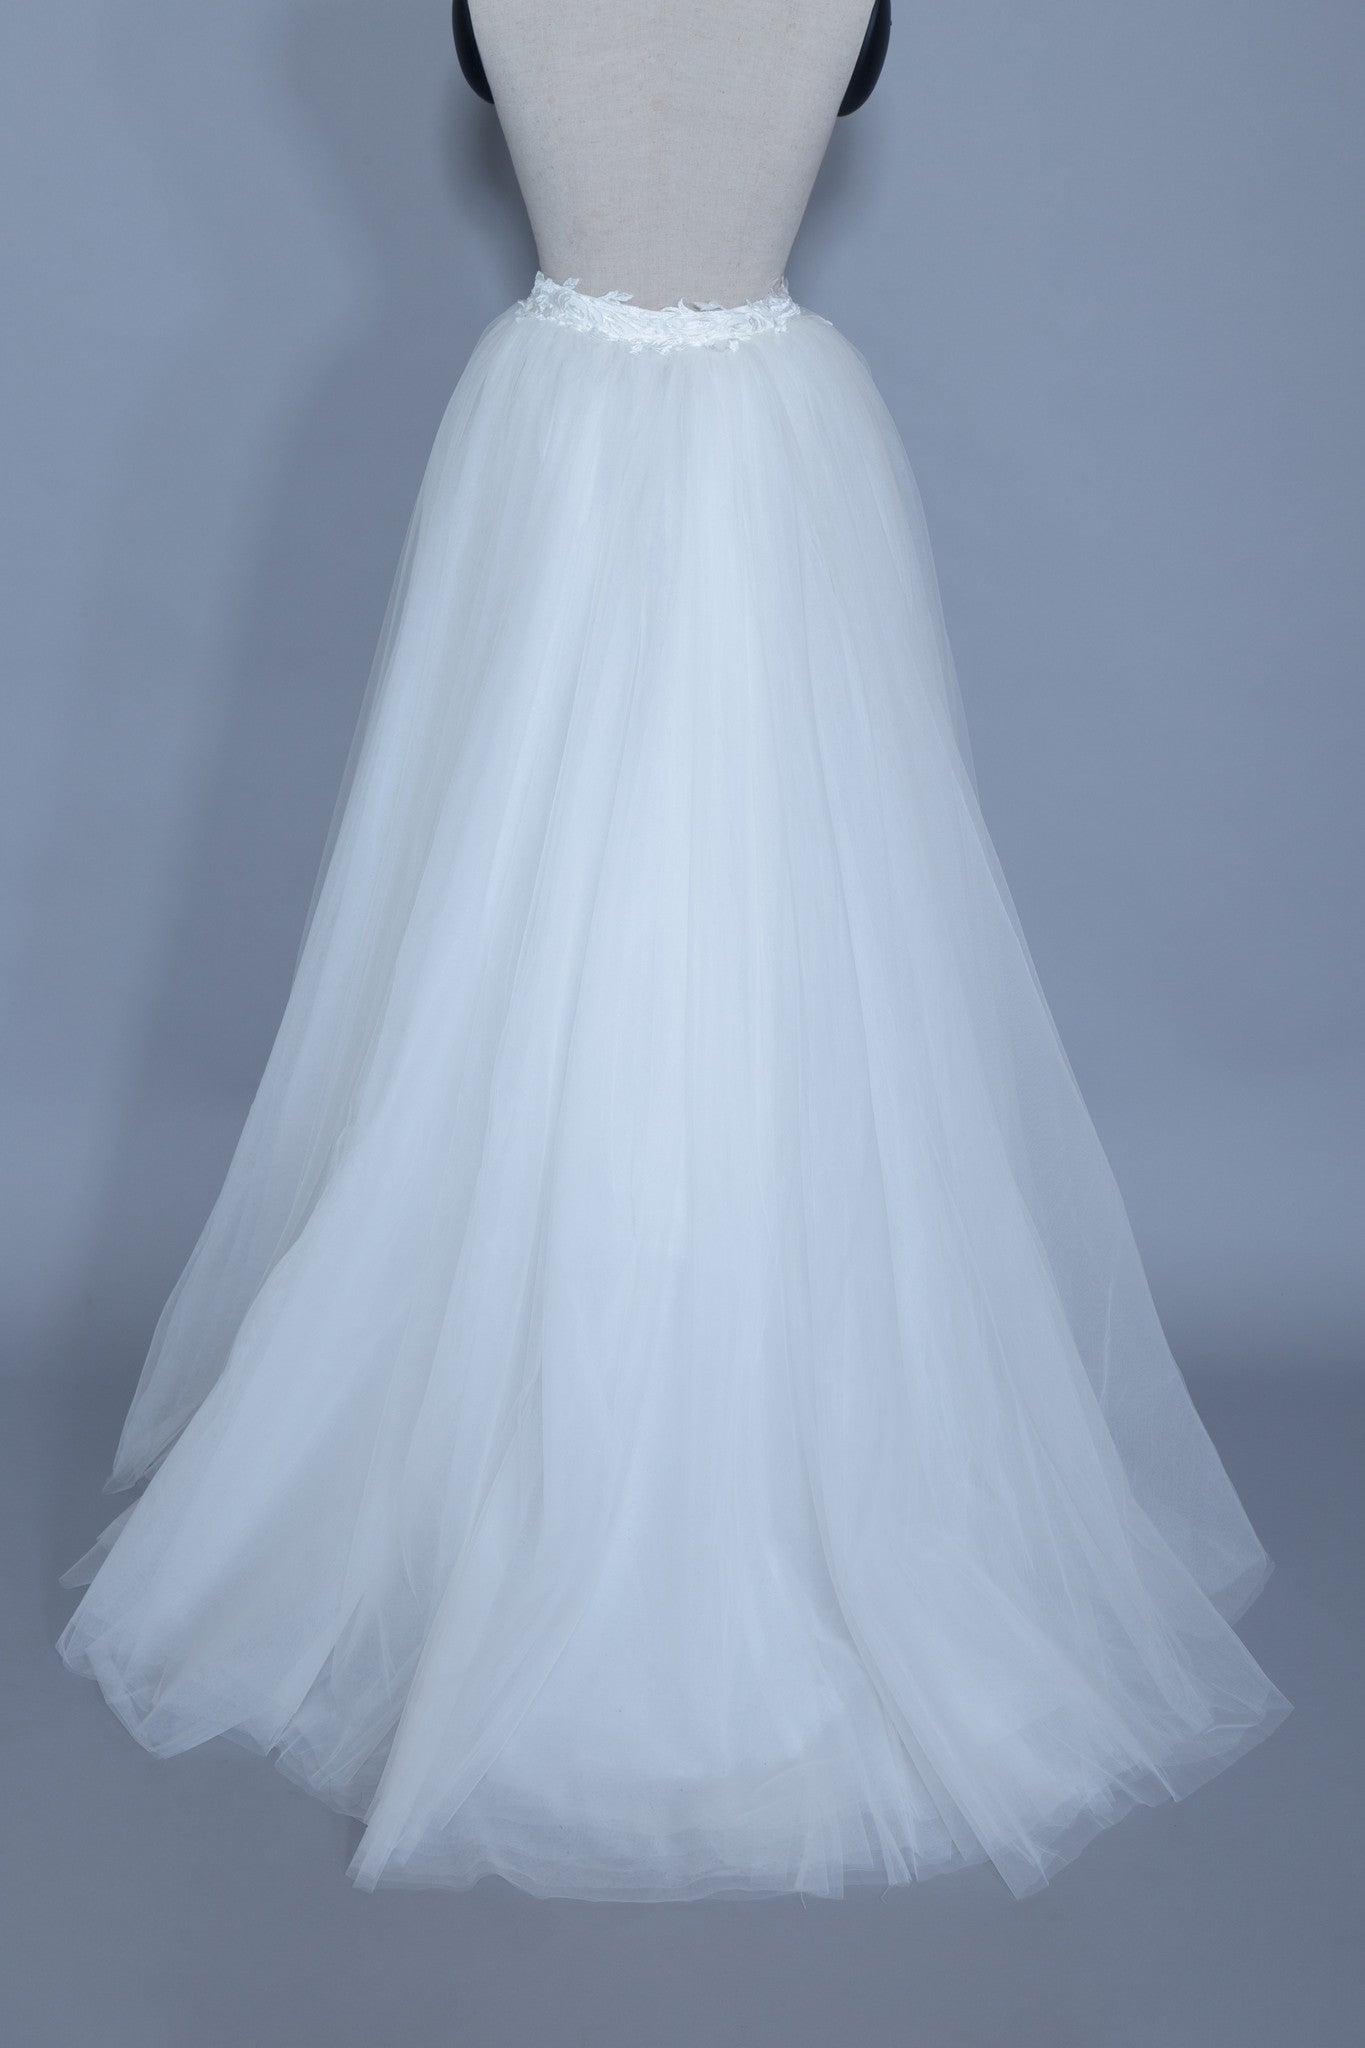 Detachable Bridal Tulle Skirt (#Basilia) - Dream Dresses by P.M.N  - 2